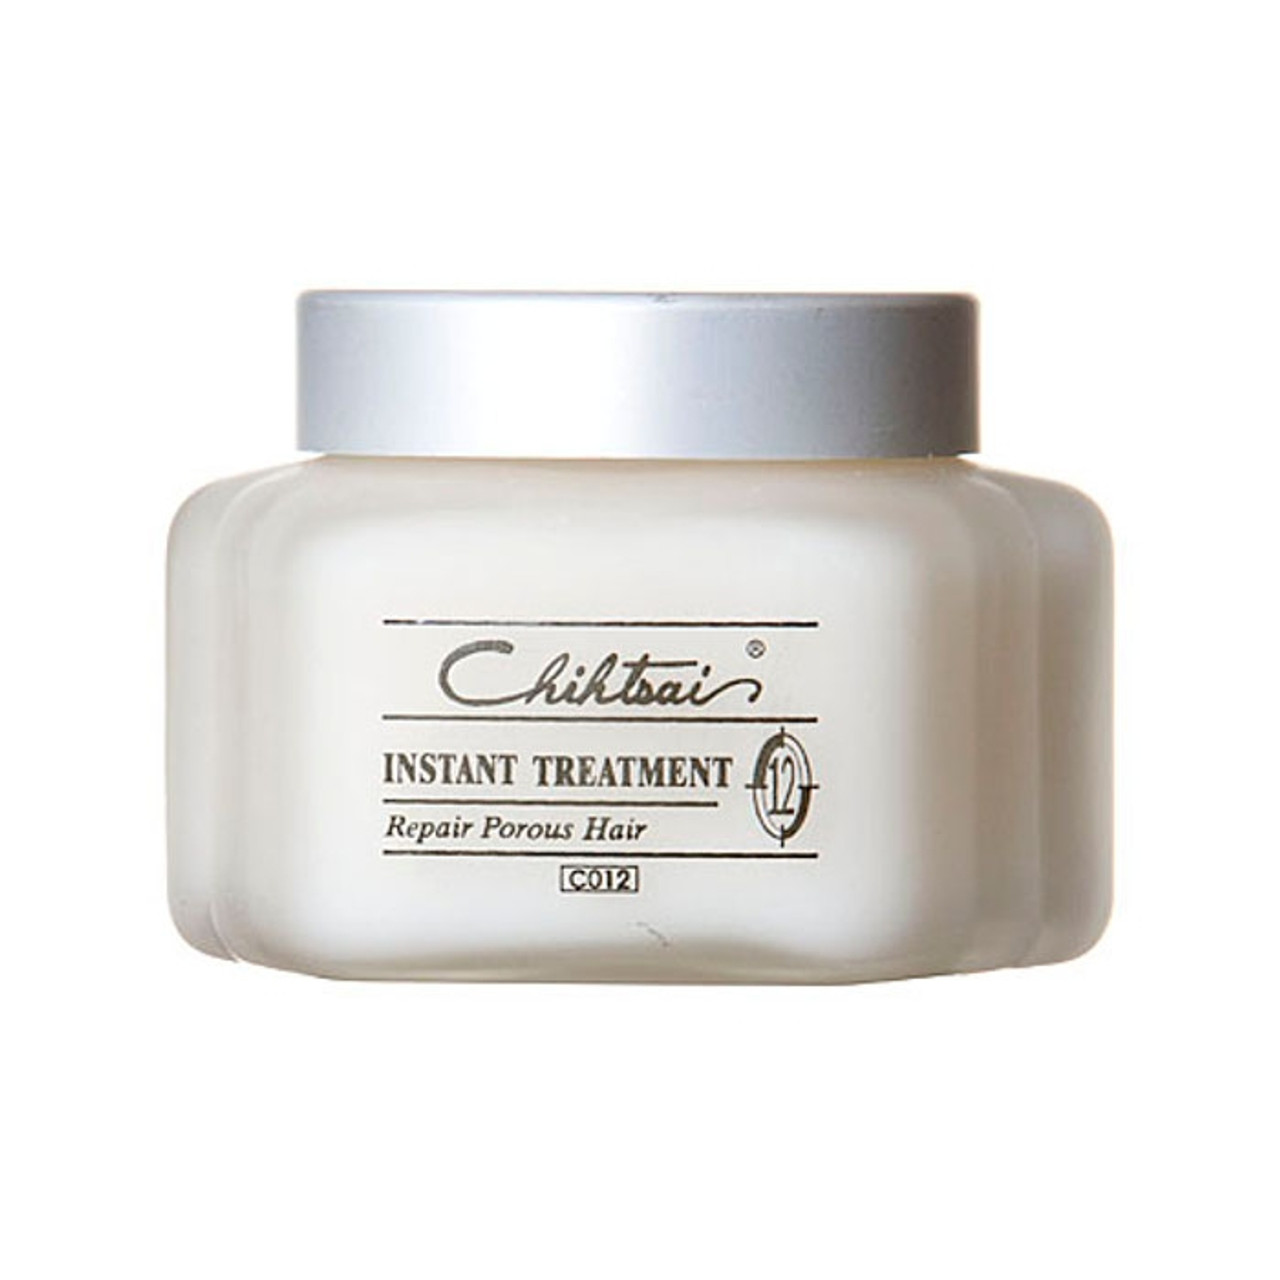 Chihtsai No.12 Instant Treatment